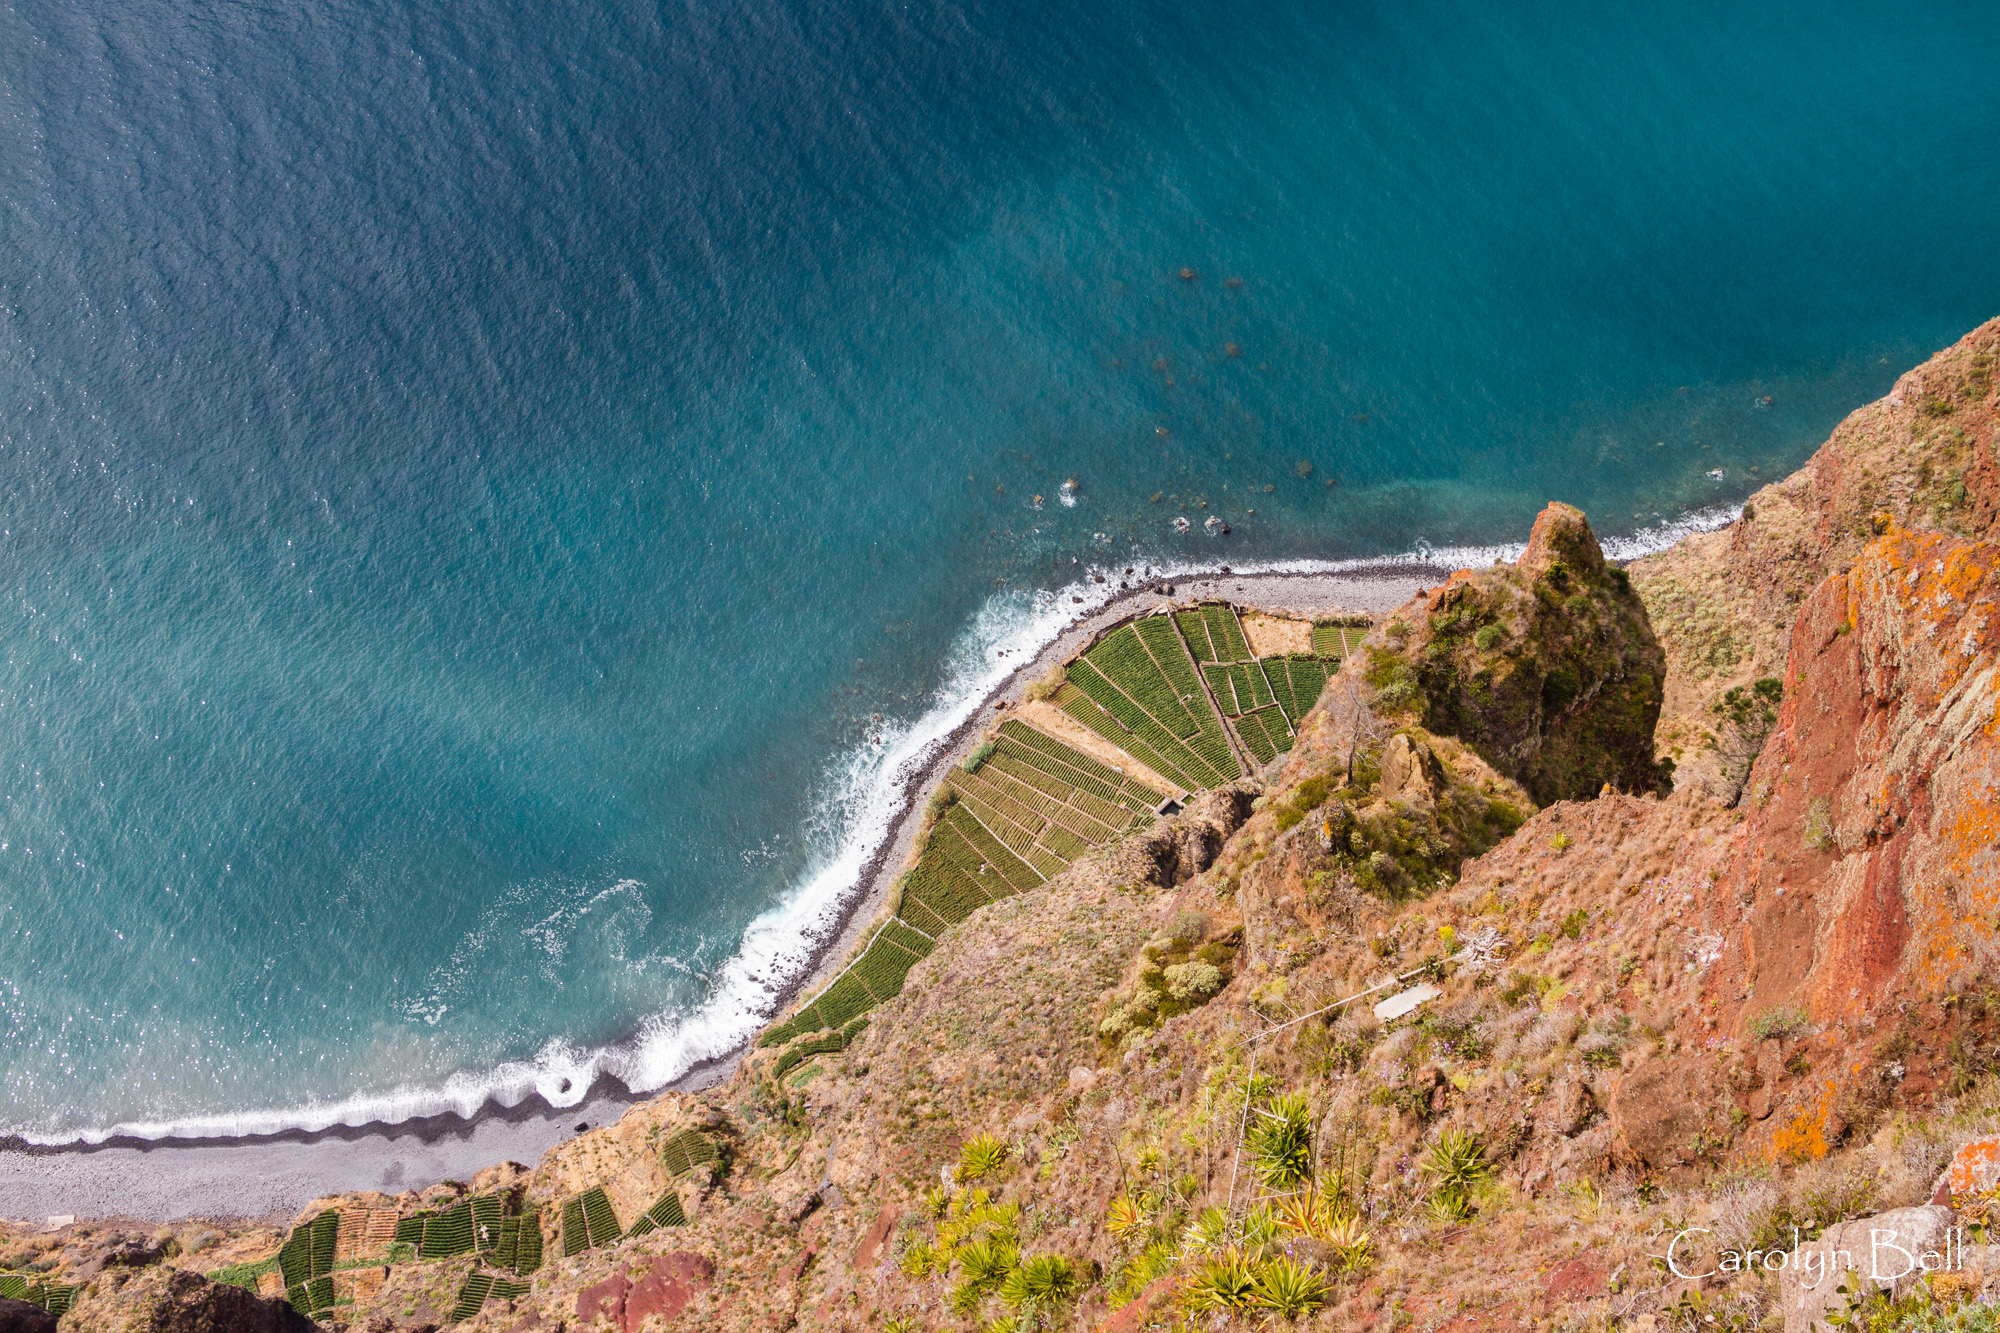 Looking down from the viewing platform, Cabo Girao